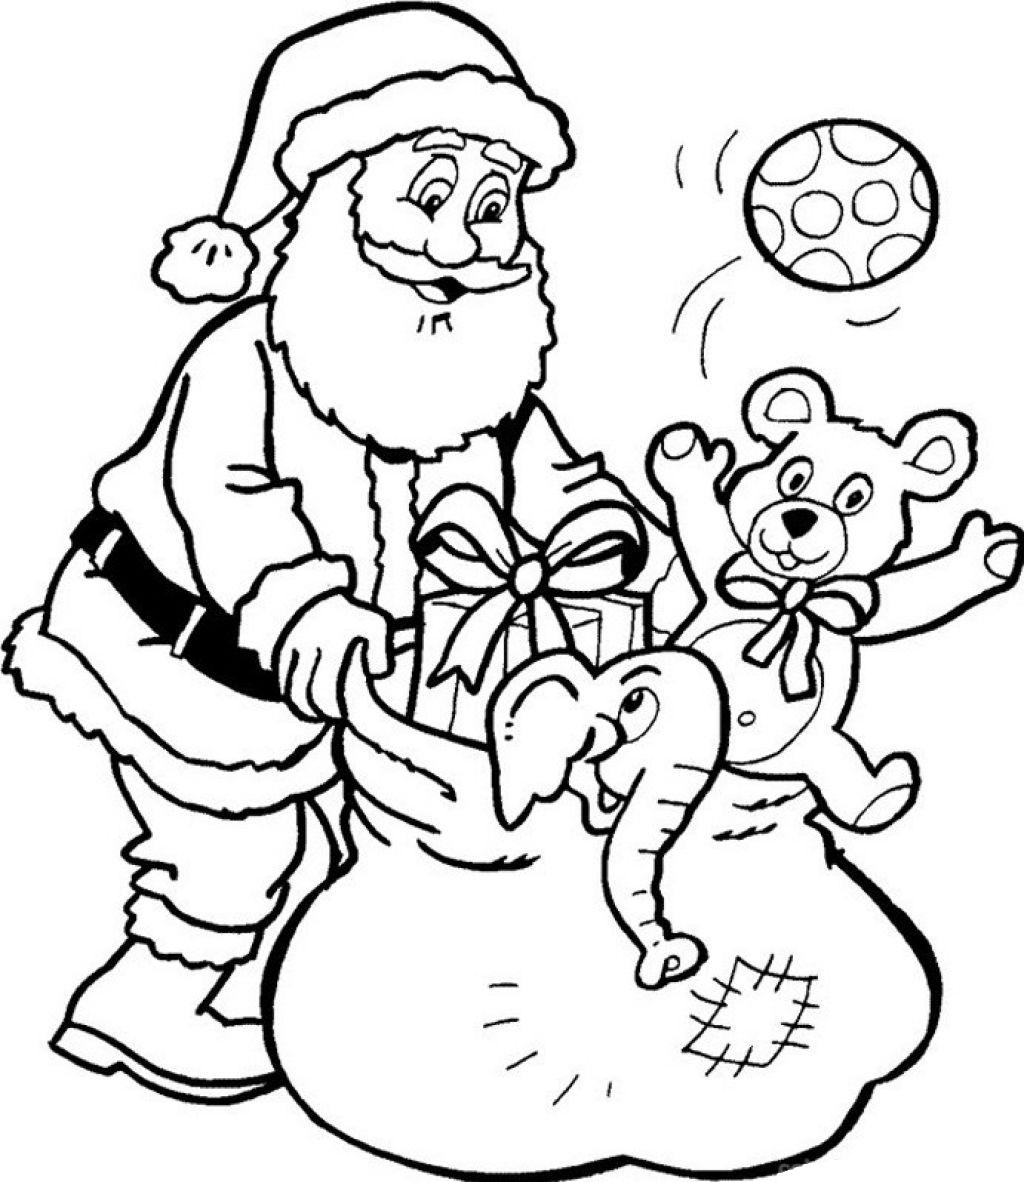 Santa claus coloring pages only coloring pages for Santa claus color page